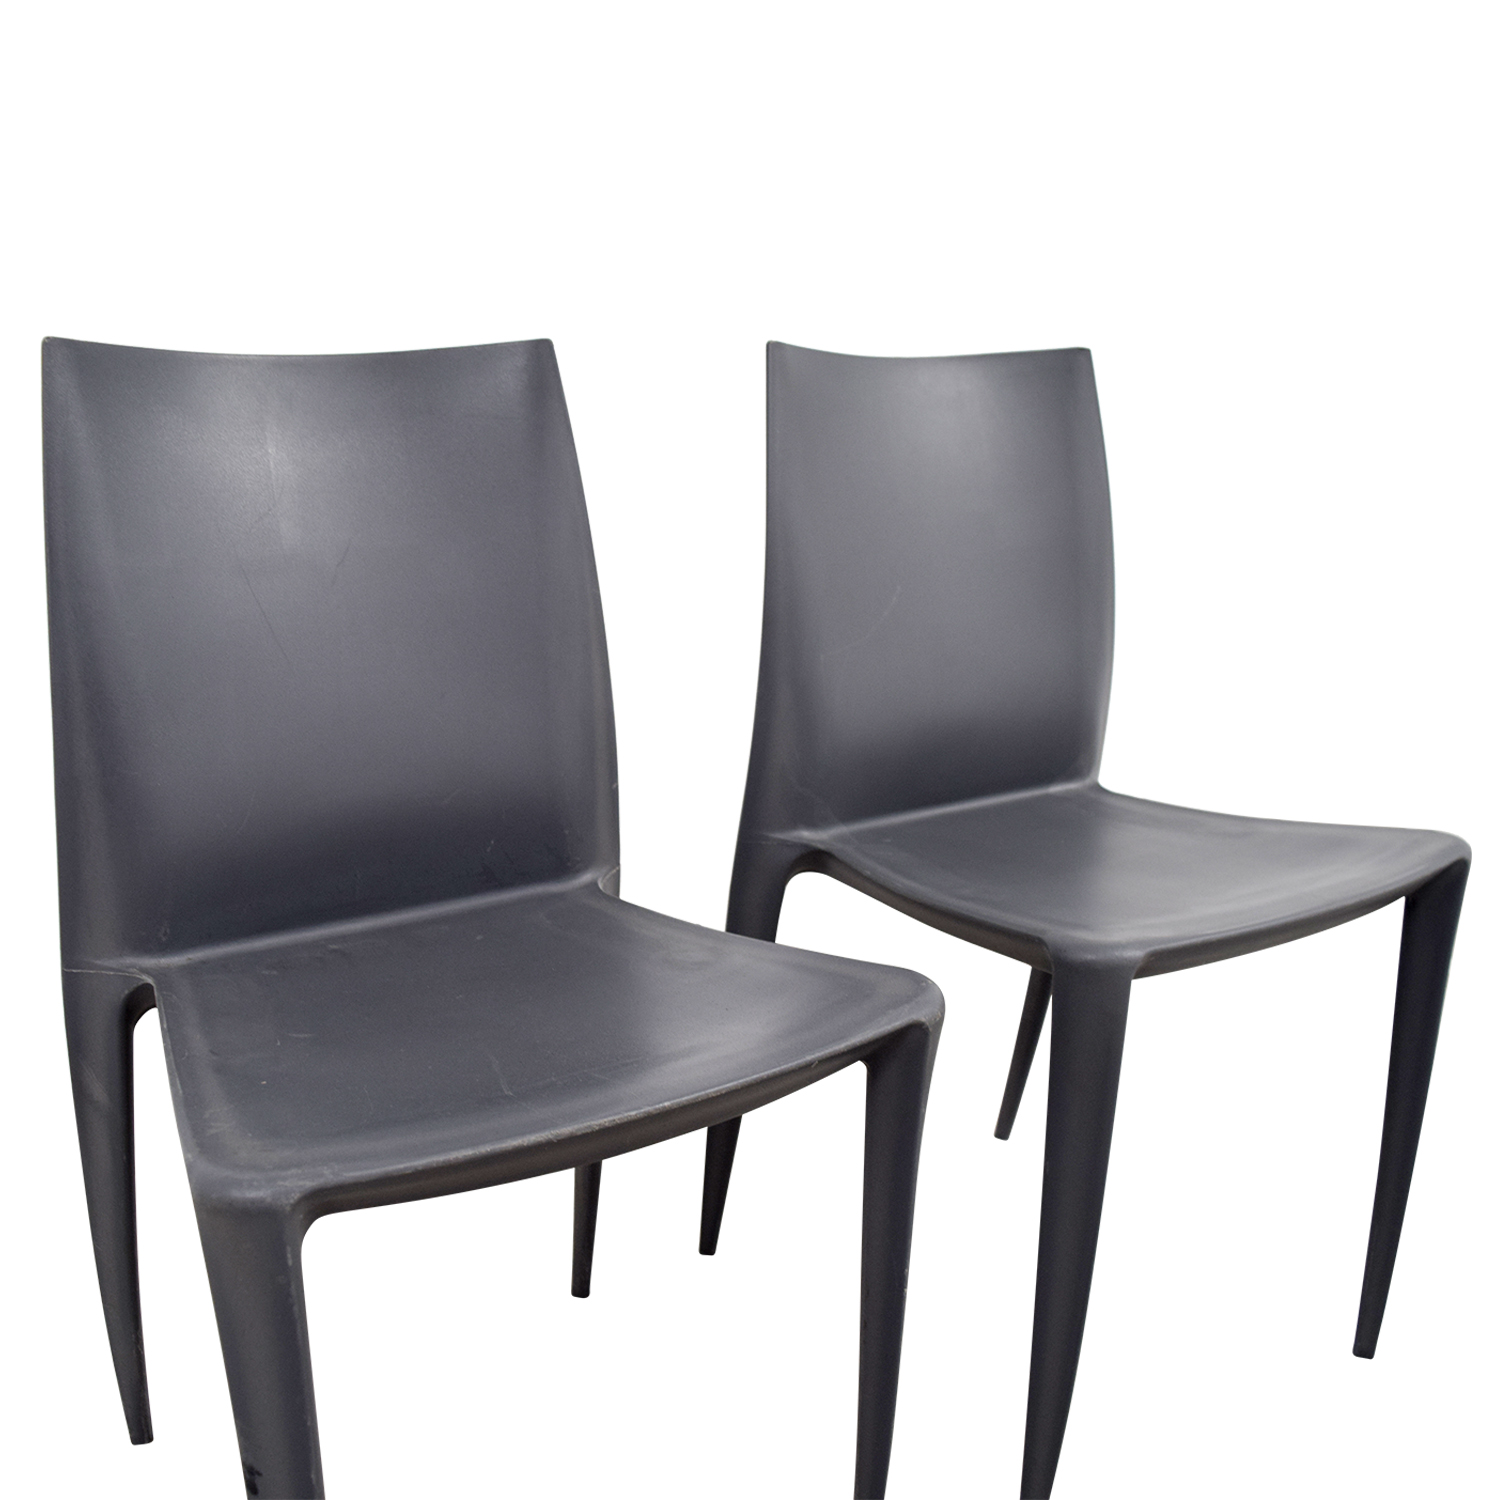 buy Arty Ltd Accent Chairs Arty LTD Chairs